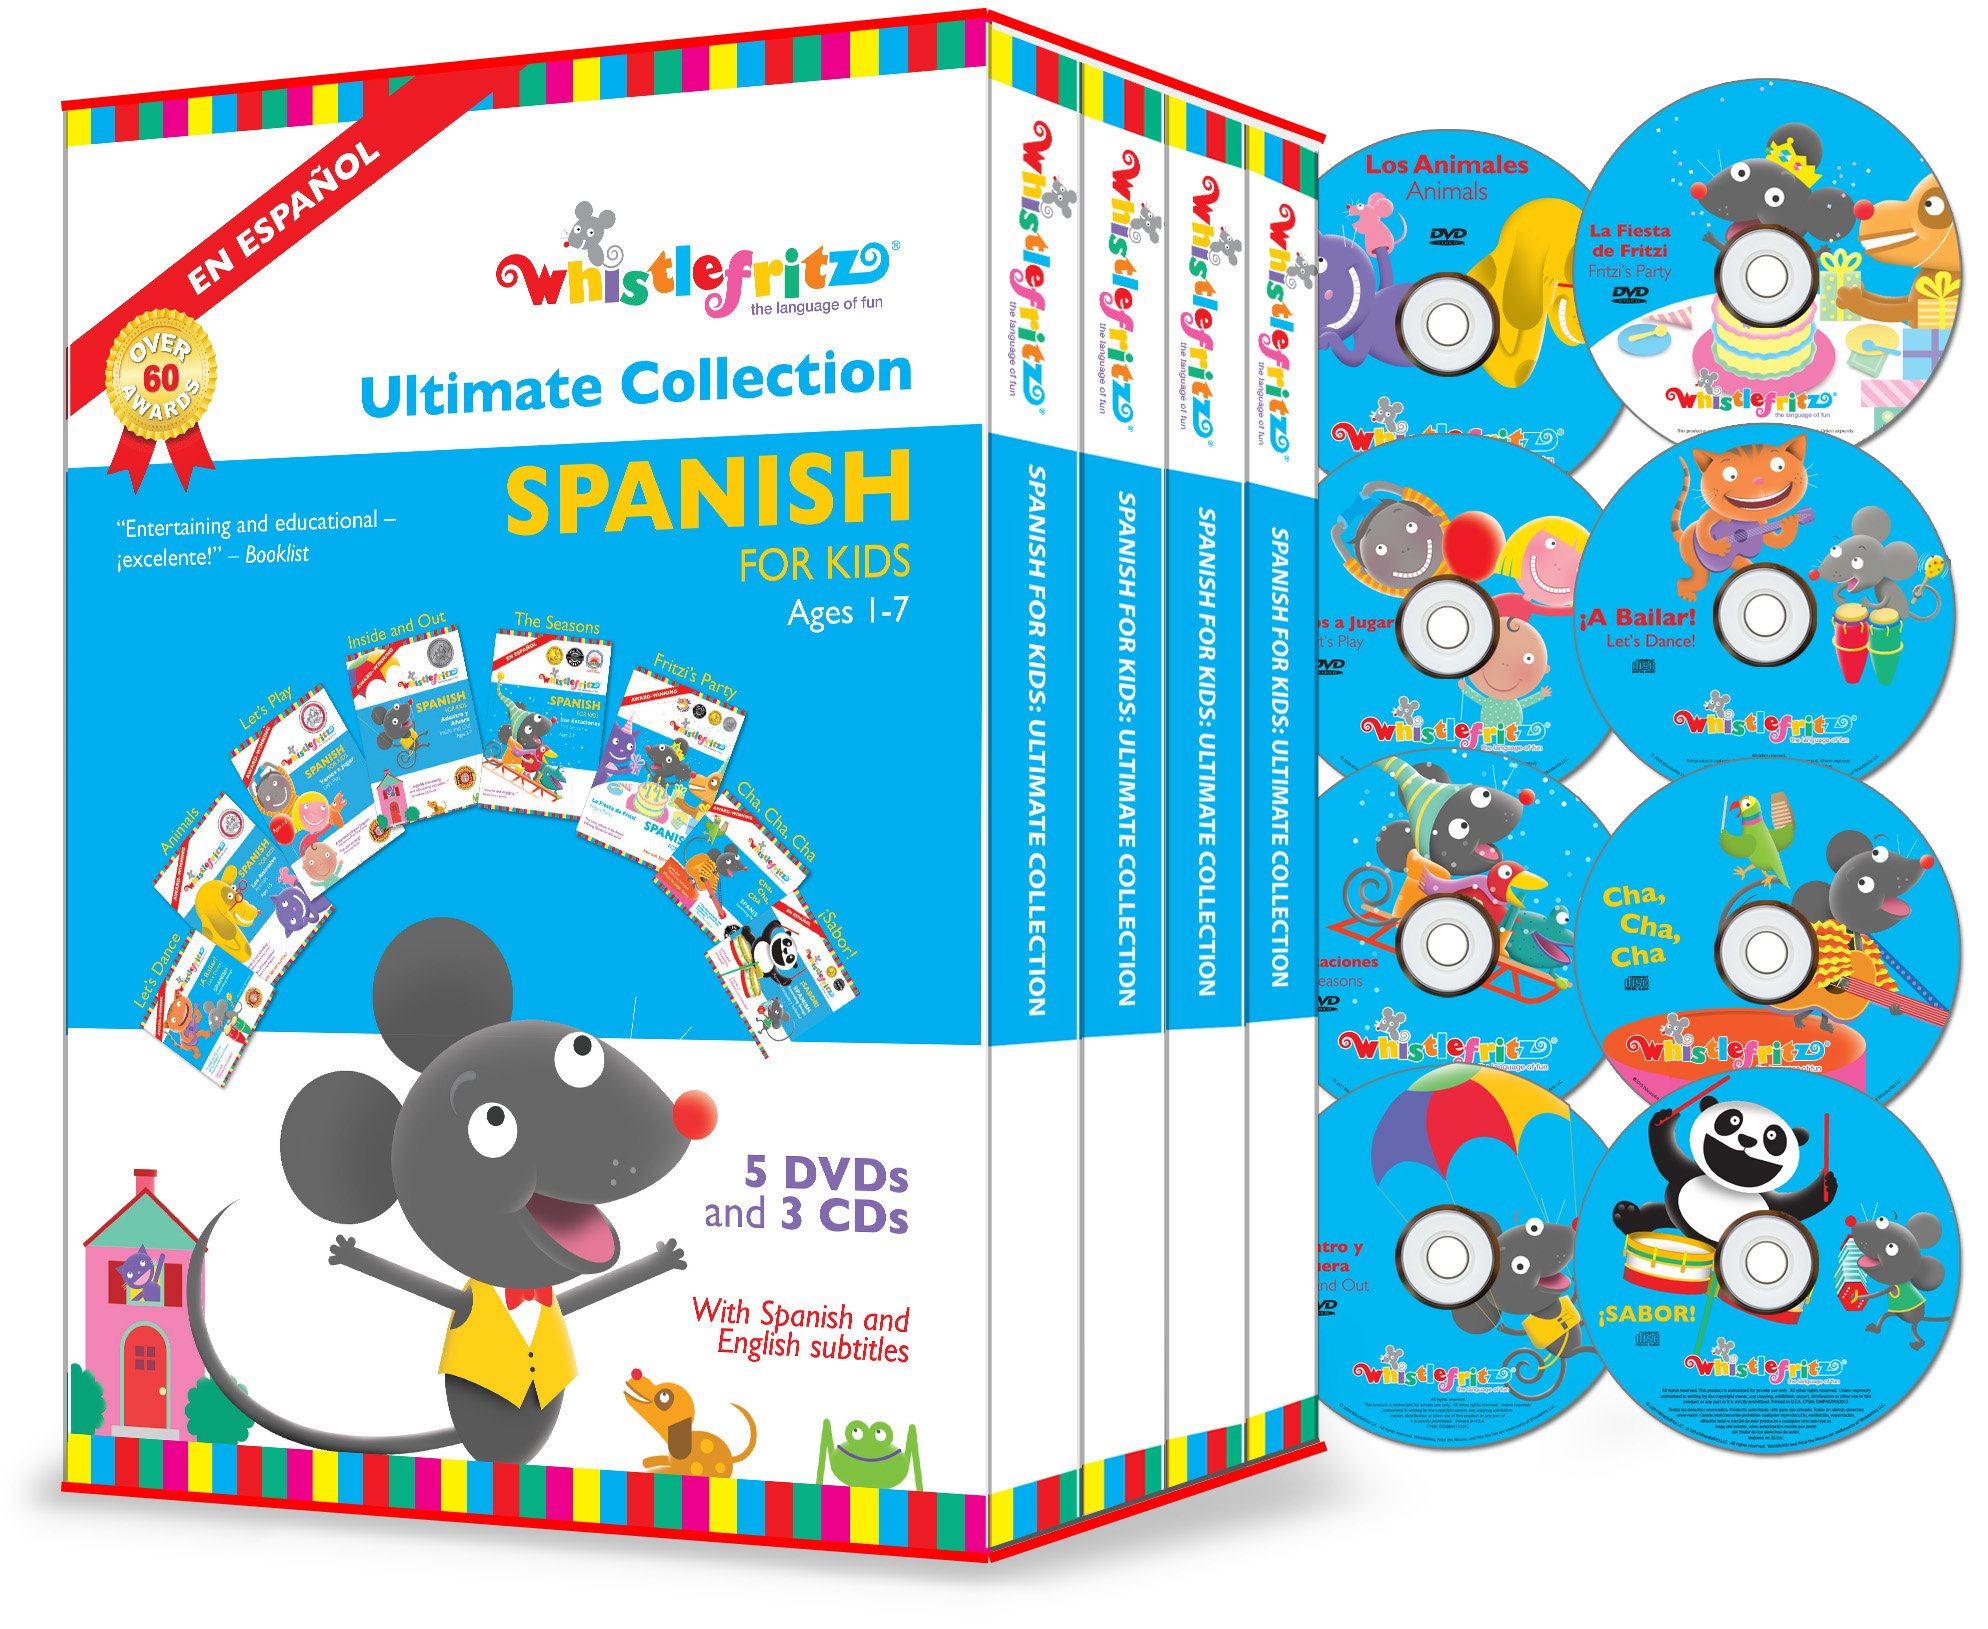 Spanish for Kids: The Ultimate Collection (5 DVDs, 3 CDs) by Whistlefritz